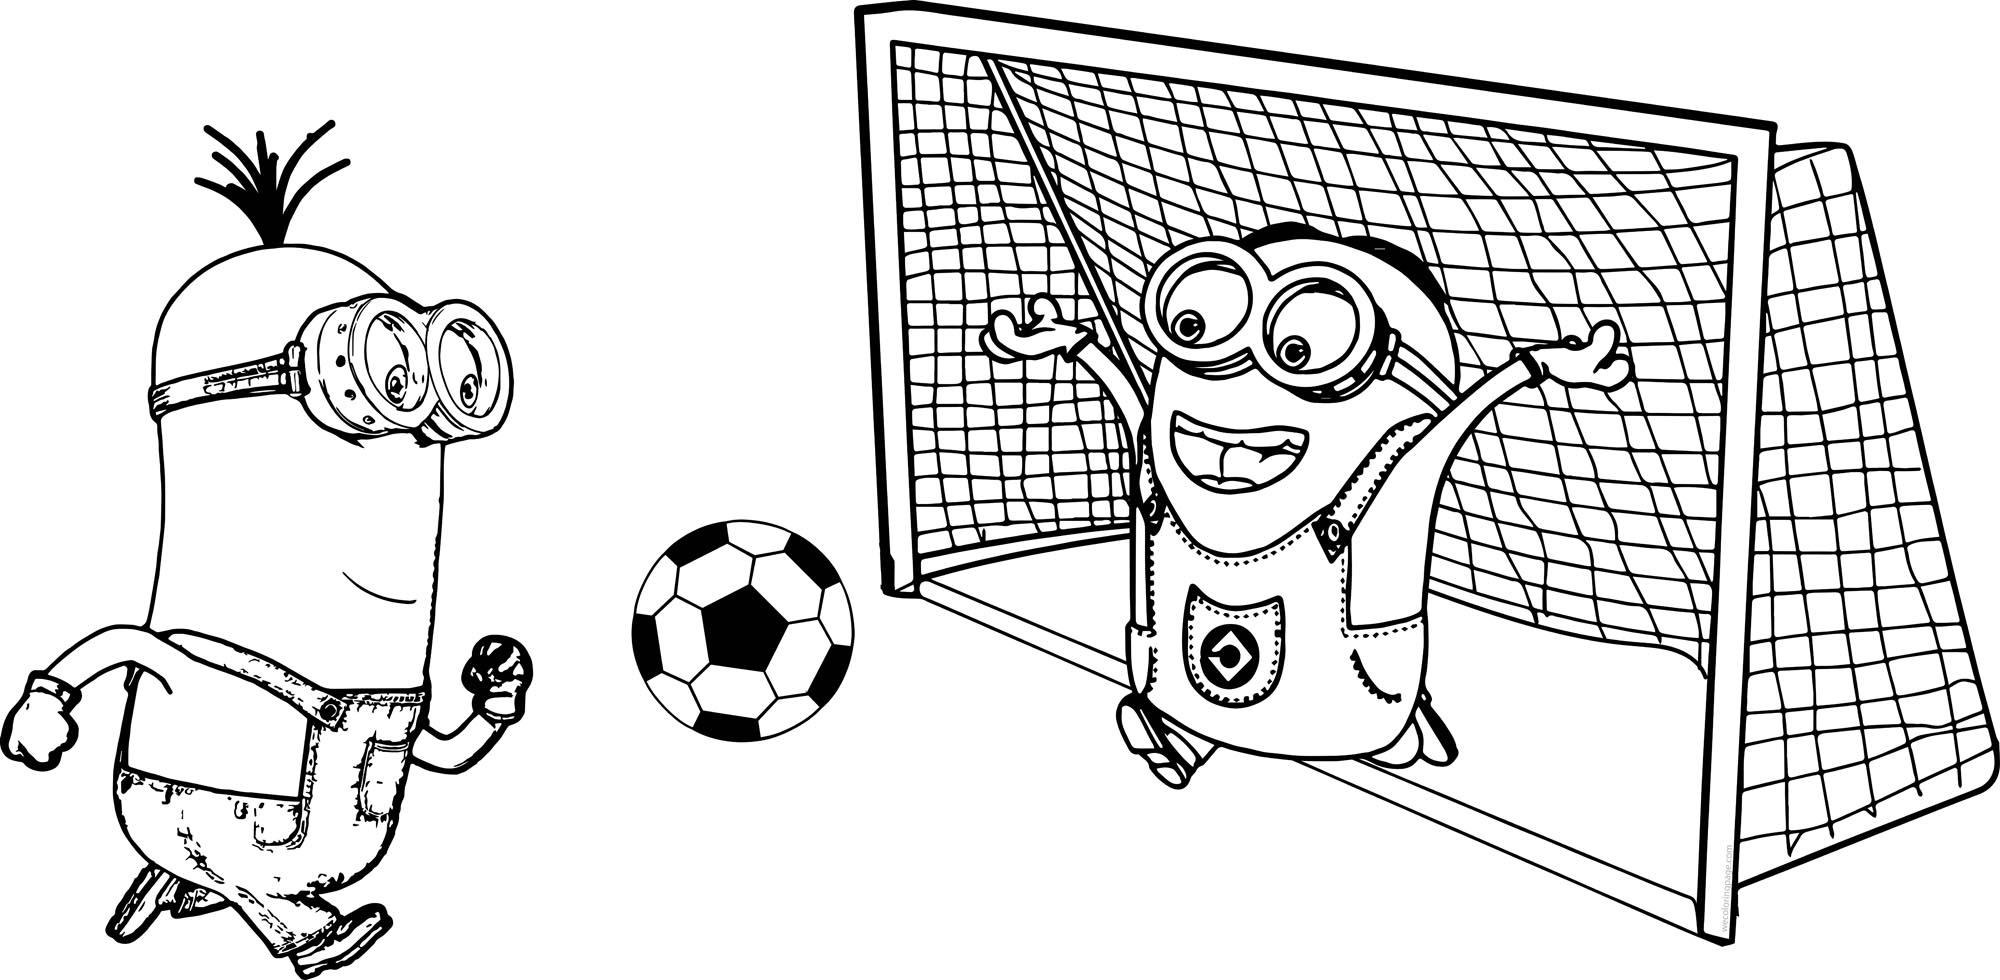 Free Coloring Pages Soccer Players